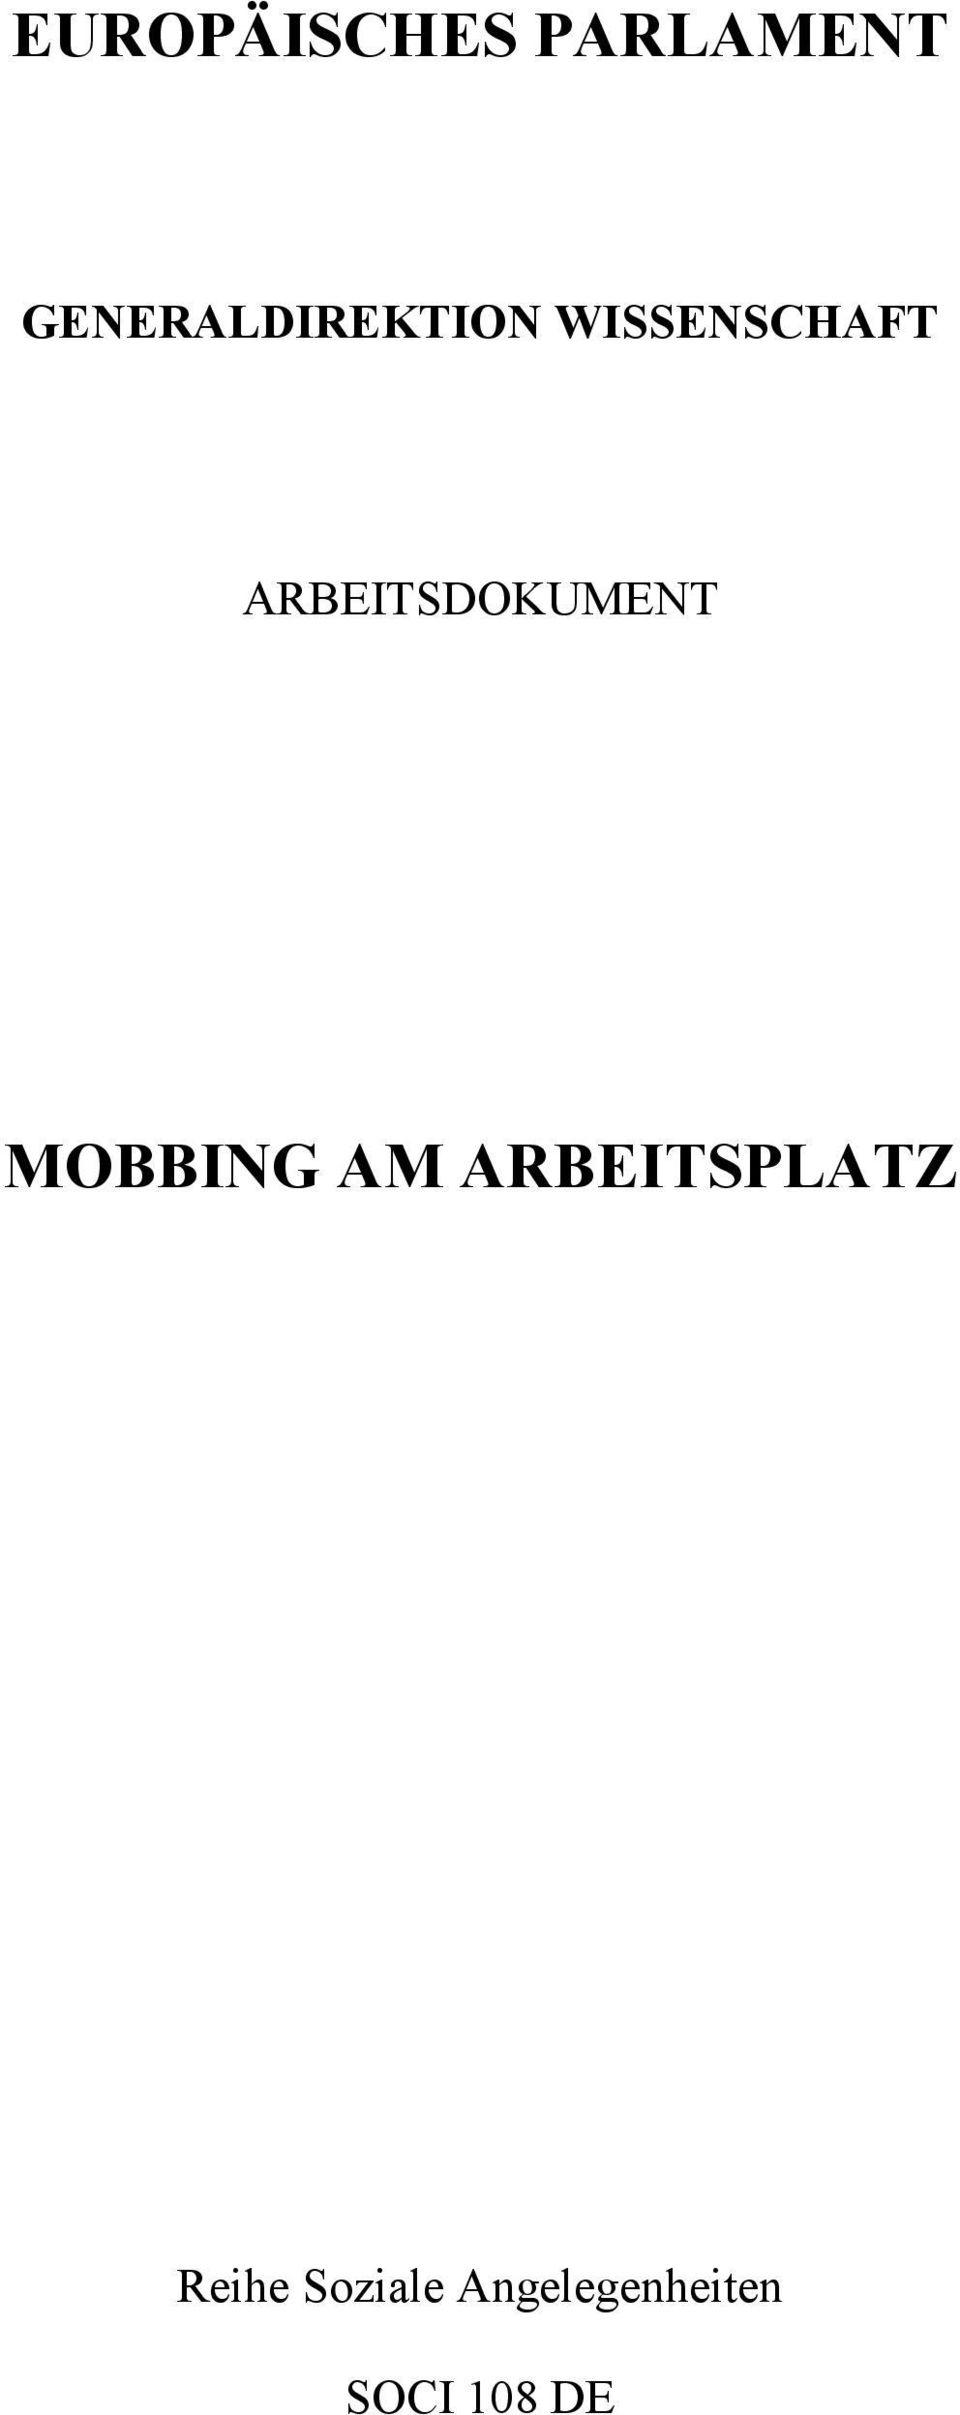 ARBEITSDOKUMENT MOBBING AM